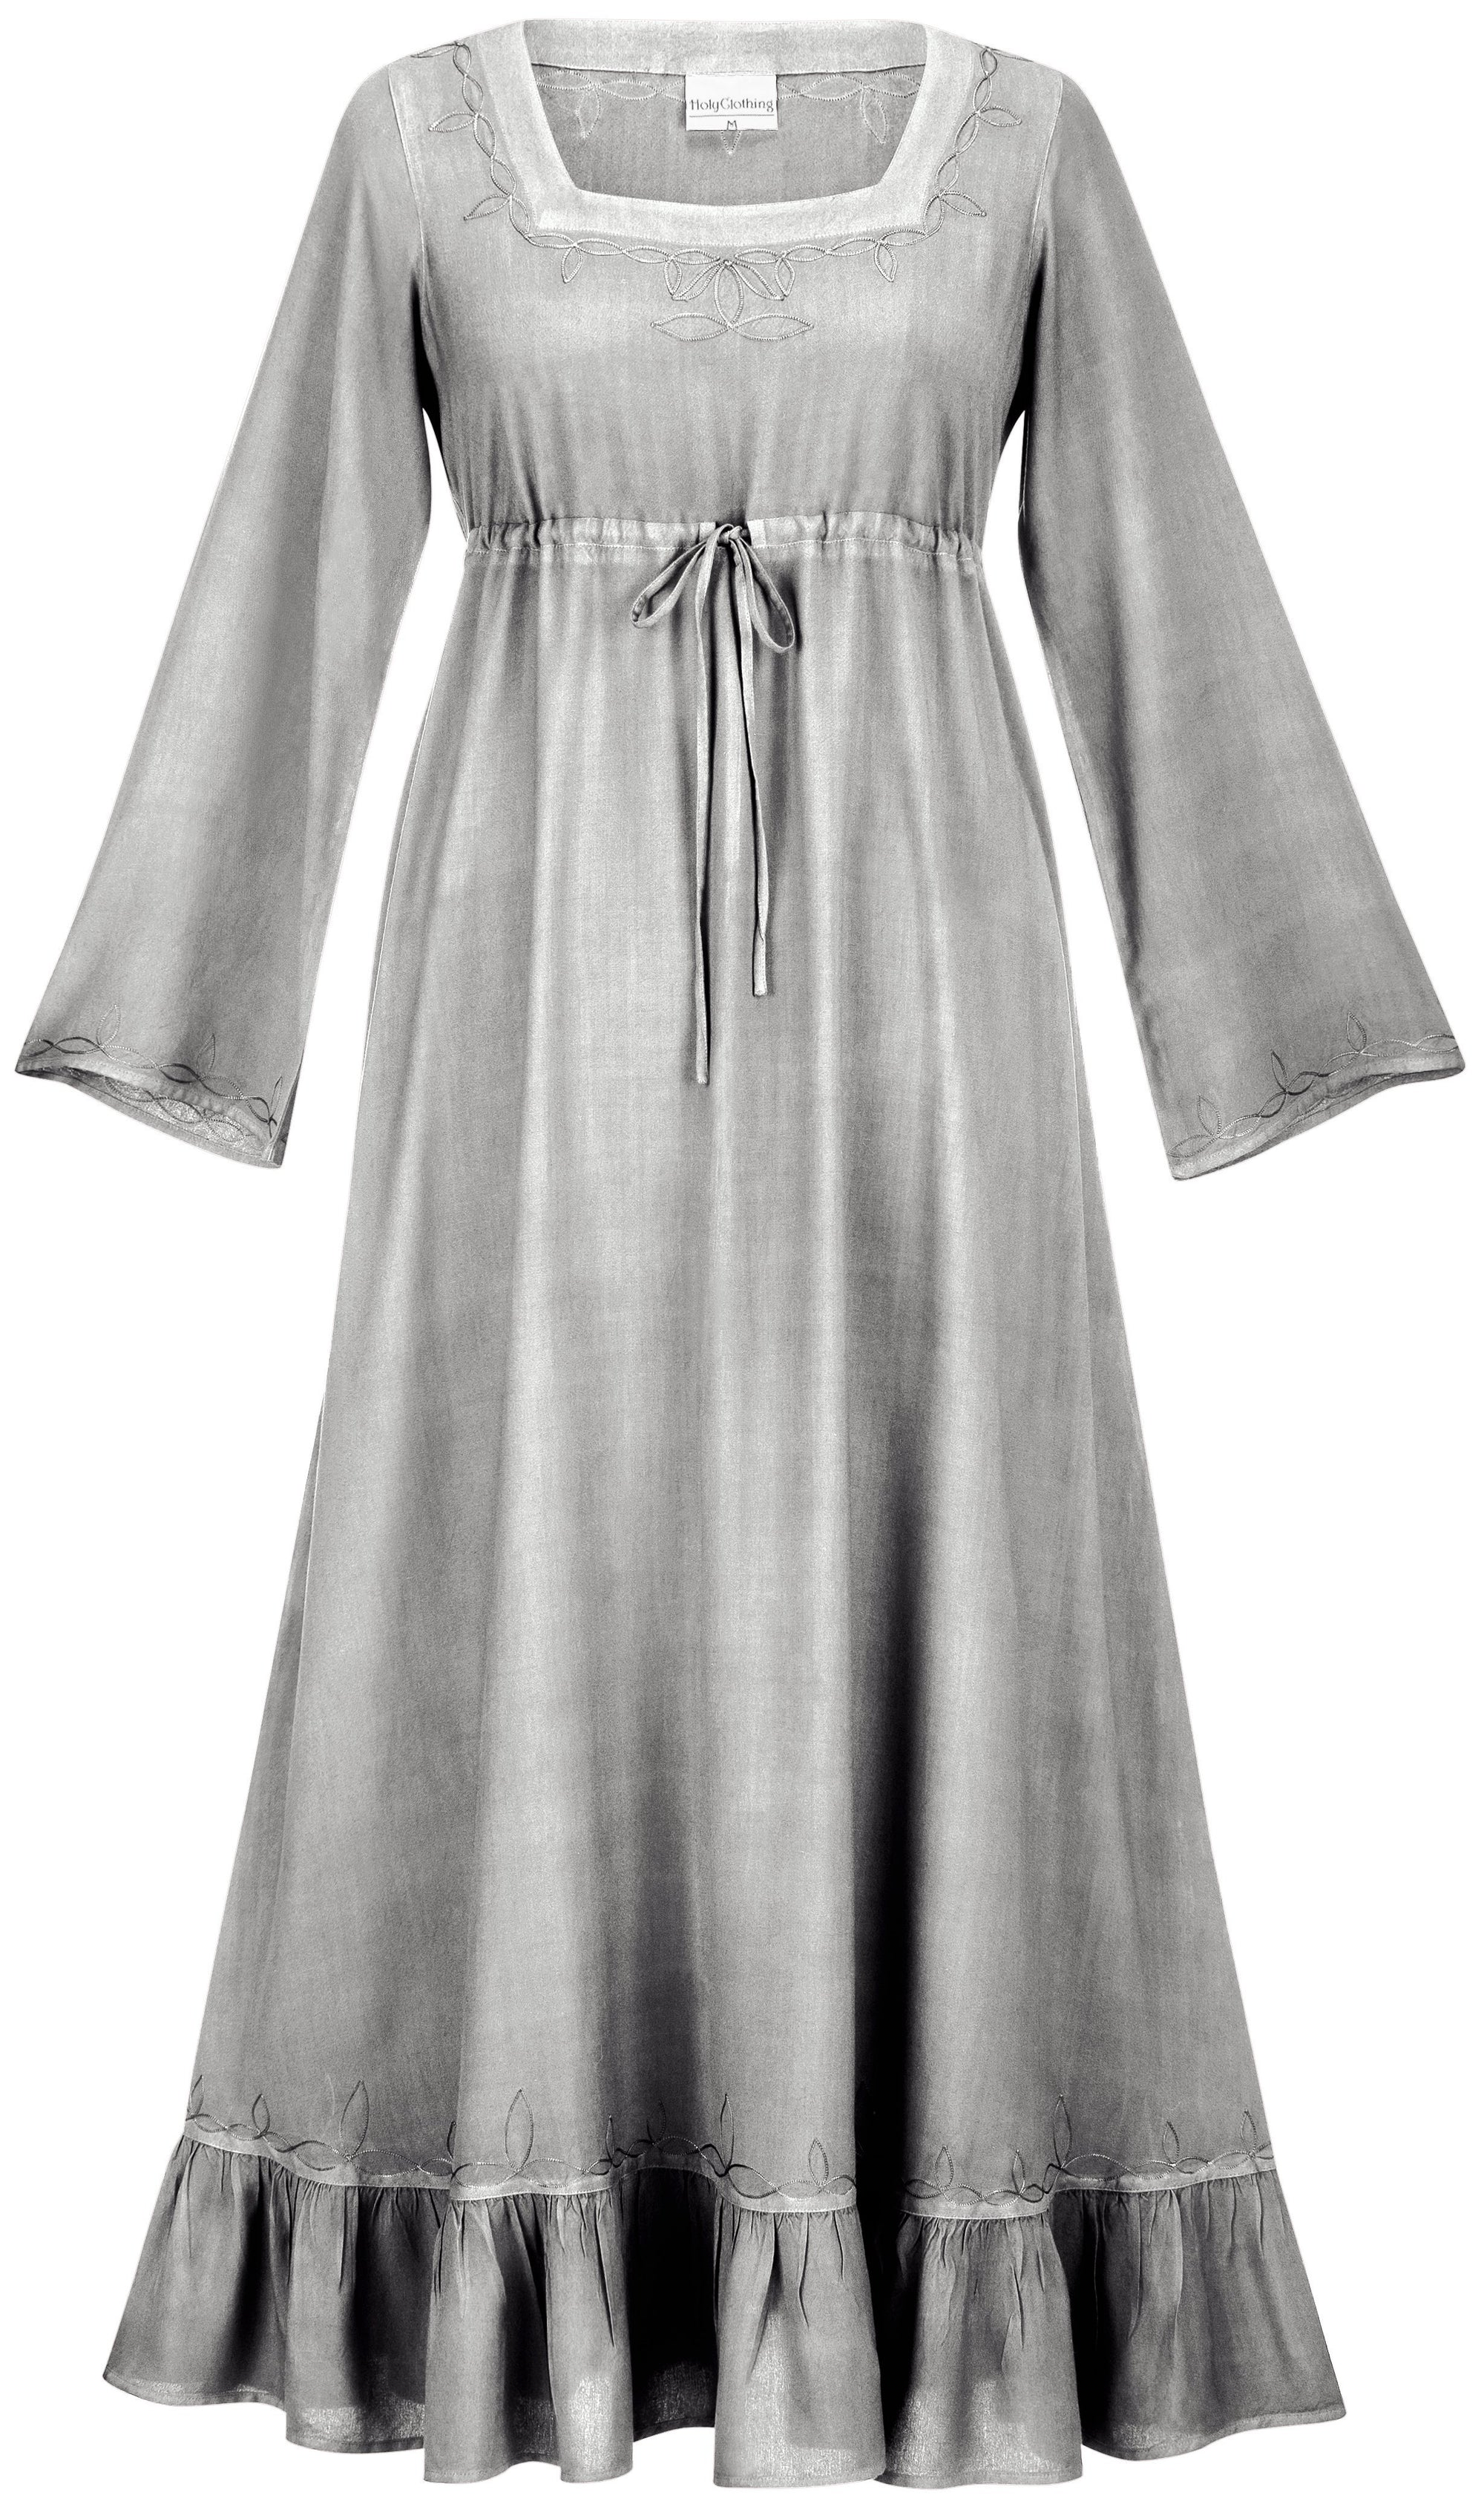 129fd8de7 Luna Maxi Nightgown - HolyClothing